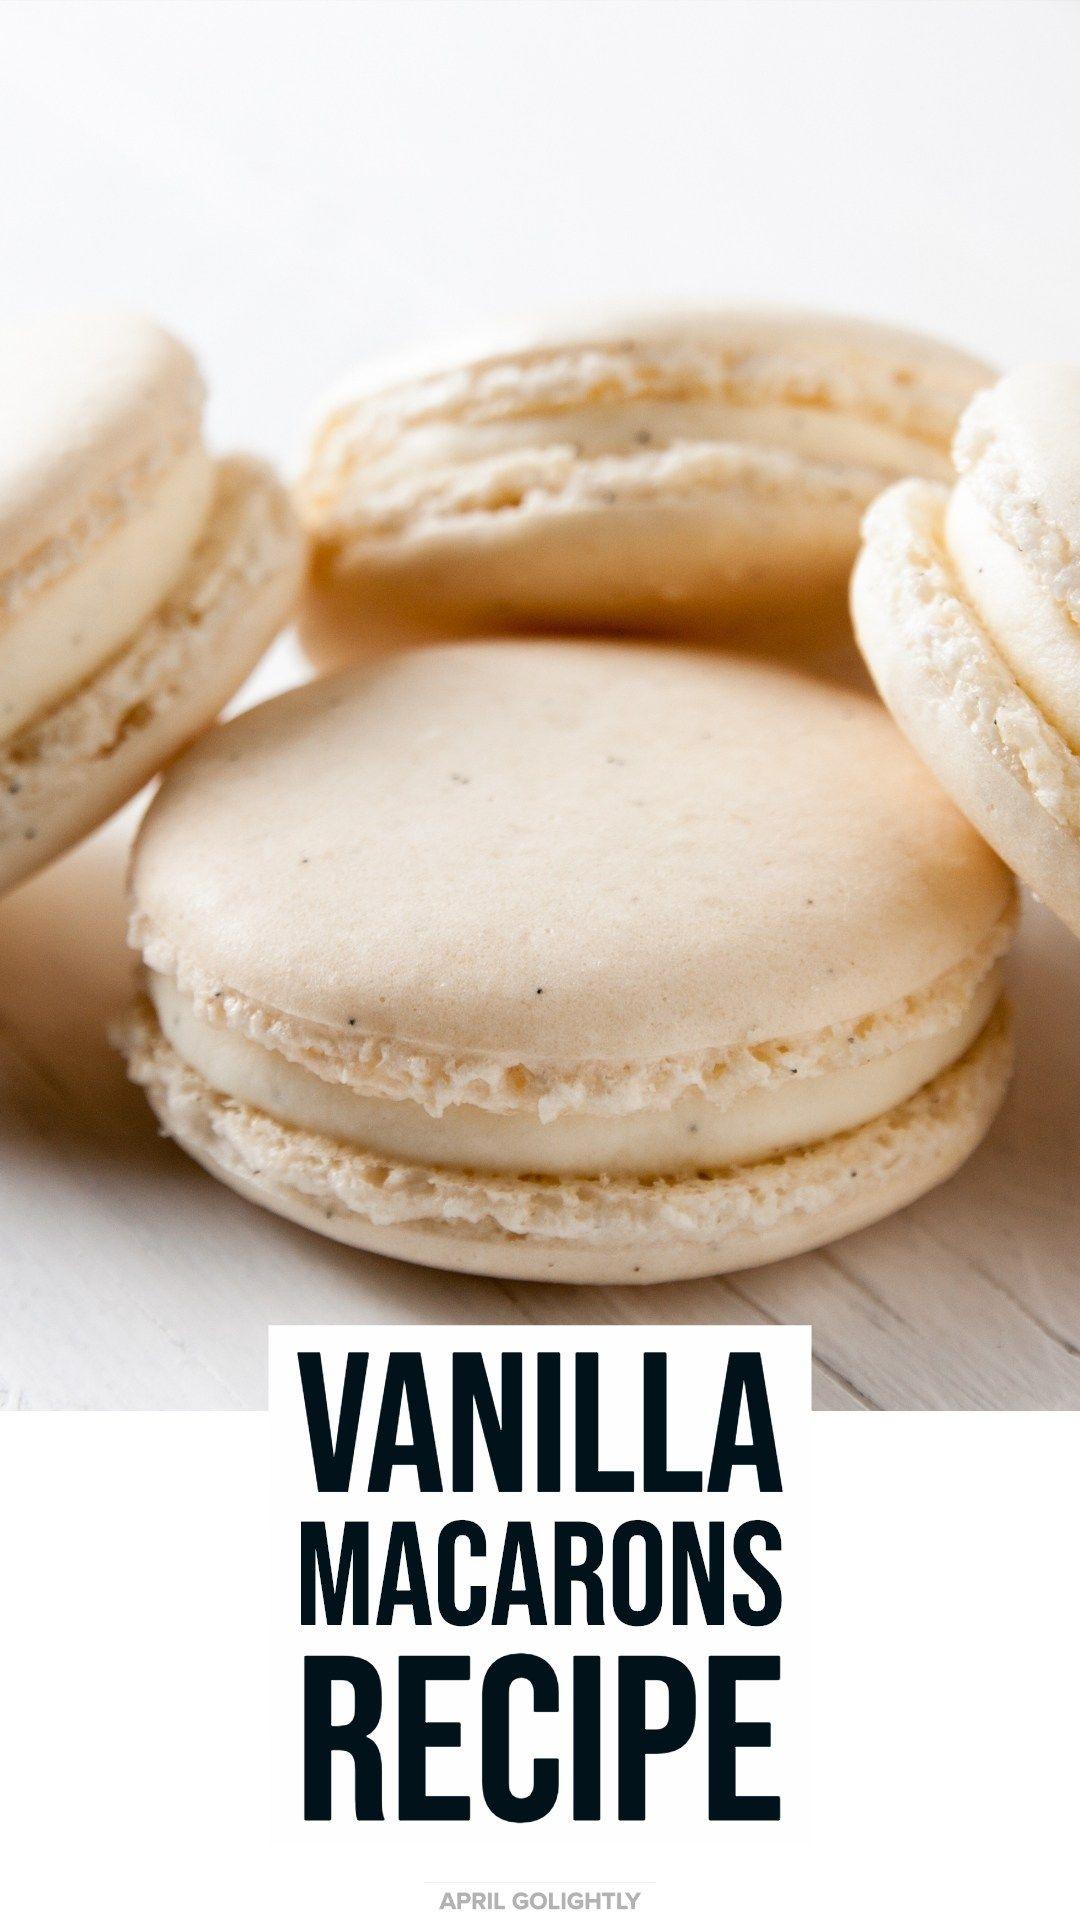 Vanilla Macarons Recipe - Easy French Macarons You